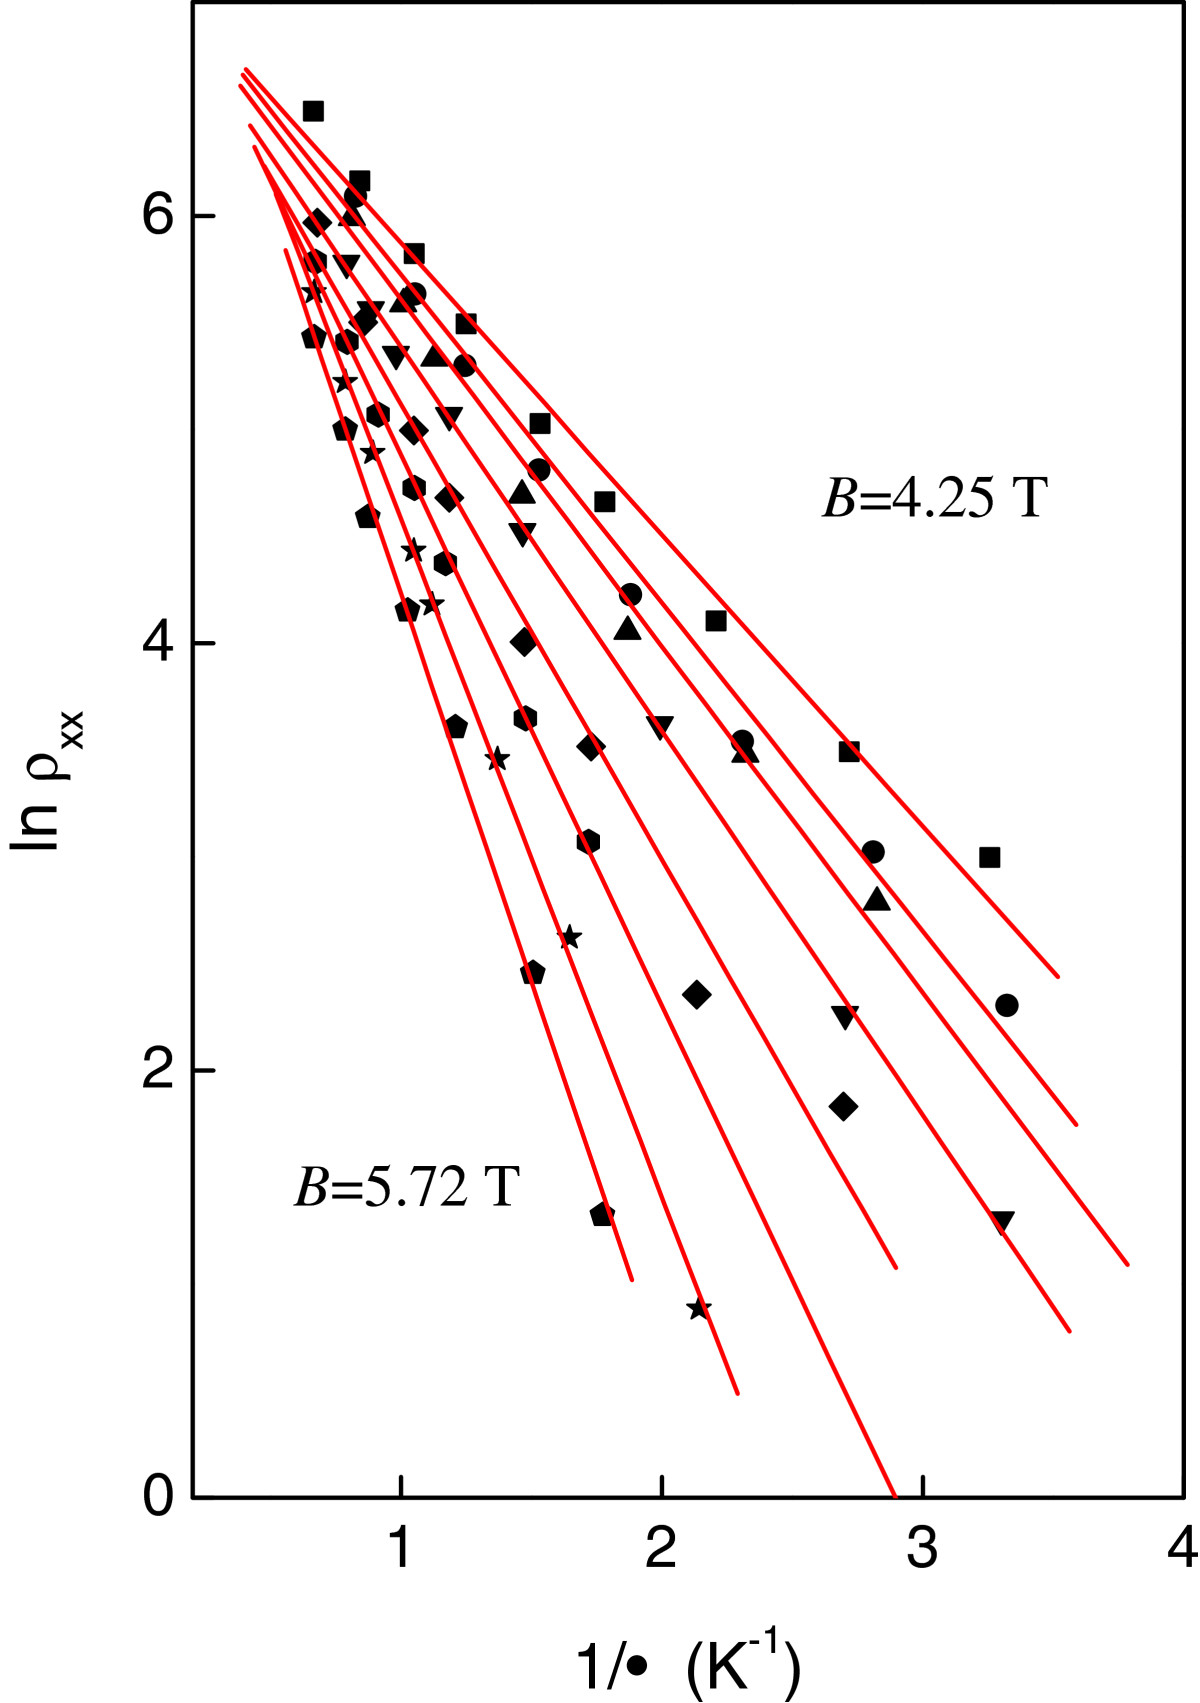 http://static-content.springer.com/image/art%3A10.1186%2F1556-276X-8-138/MediaObjects/11671_2013_Article_1389_Fig6_HTML.jpg